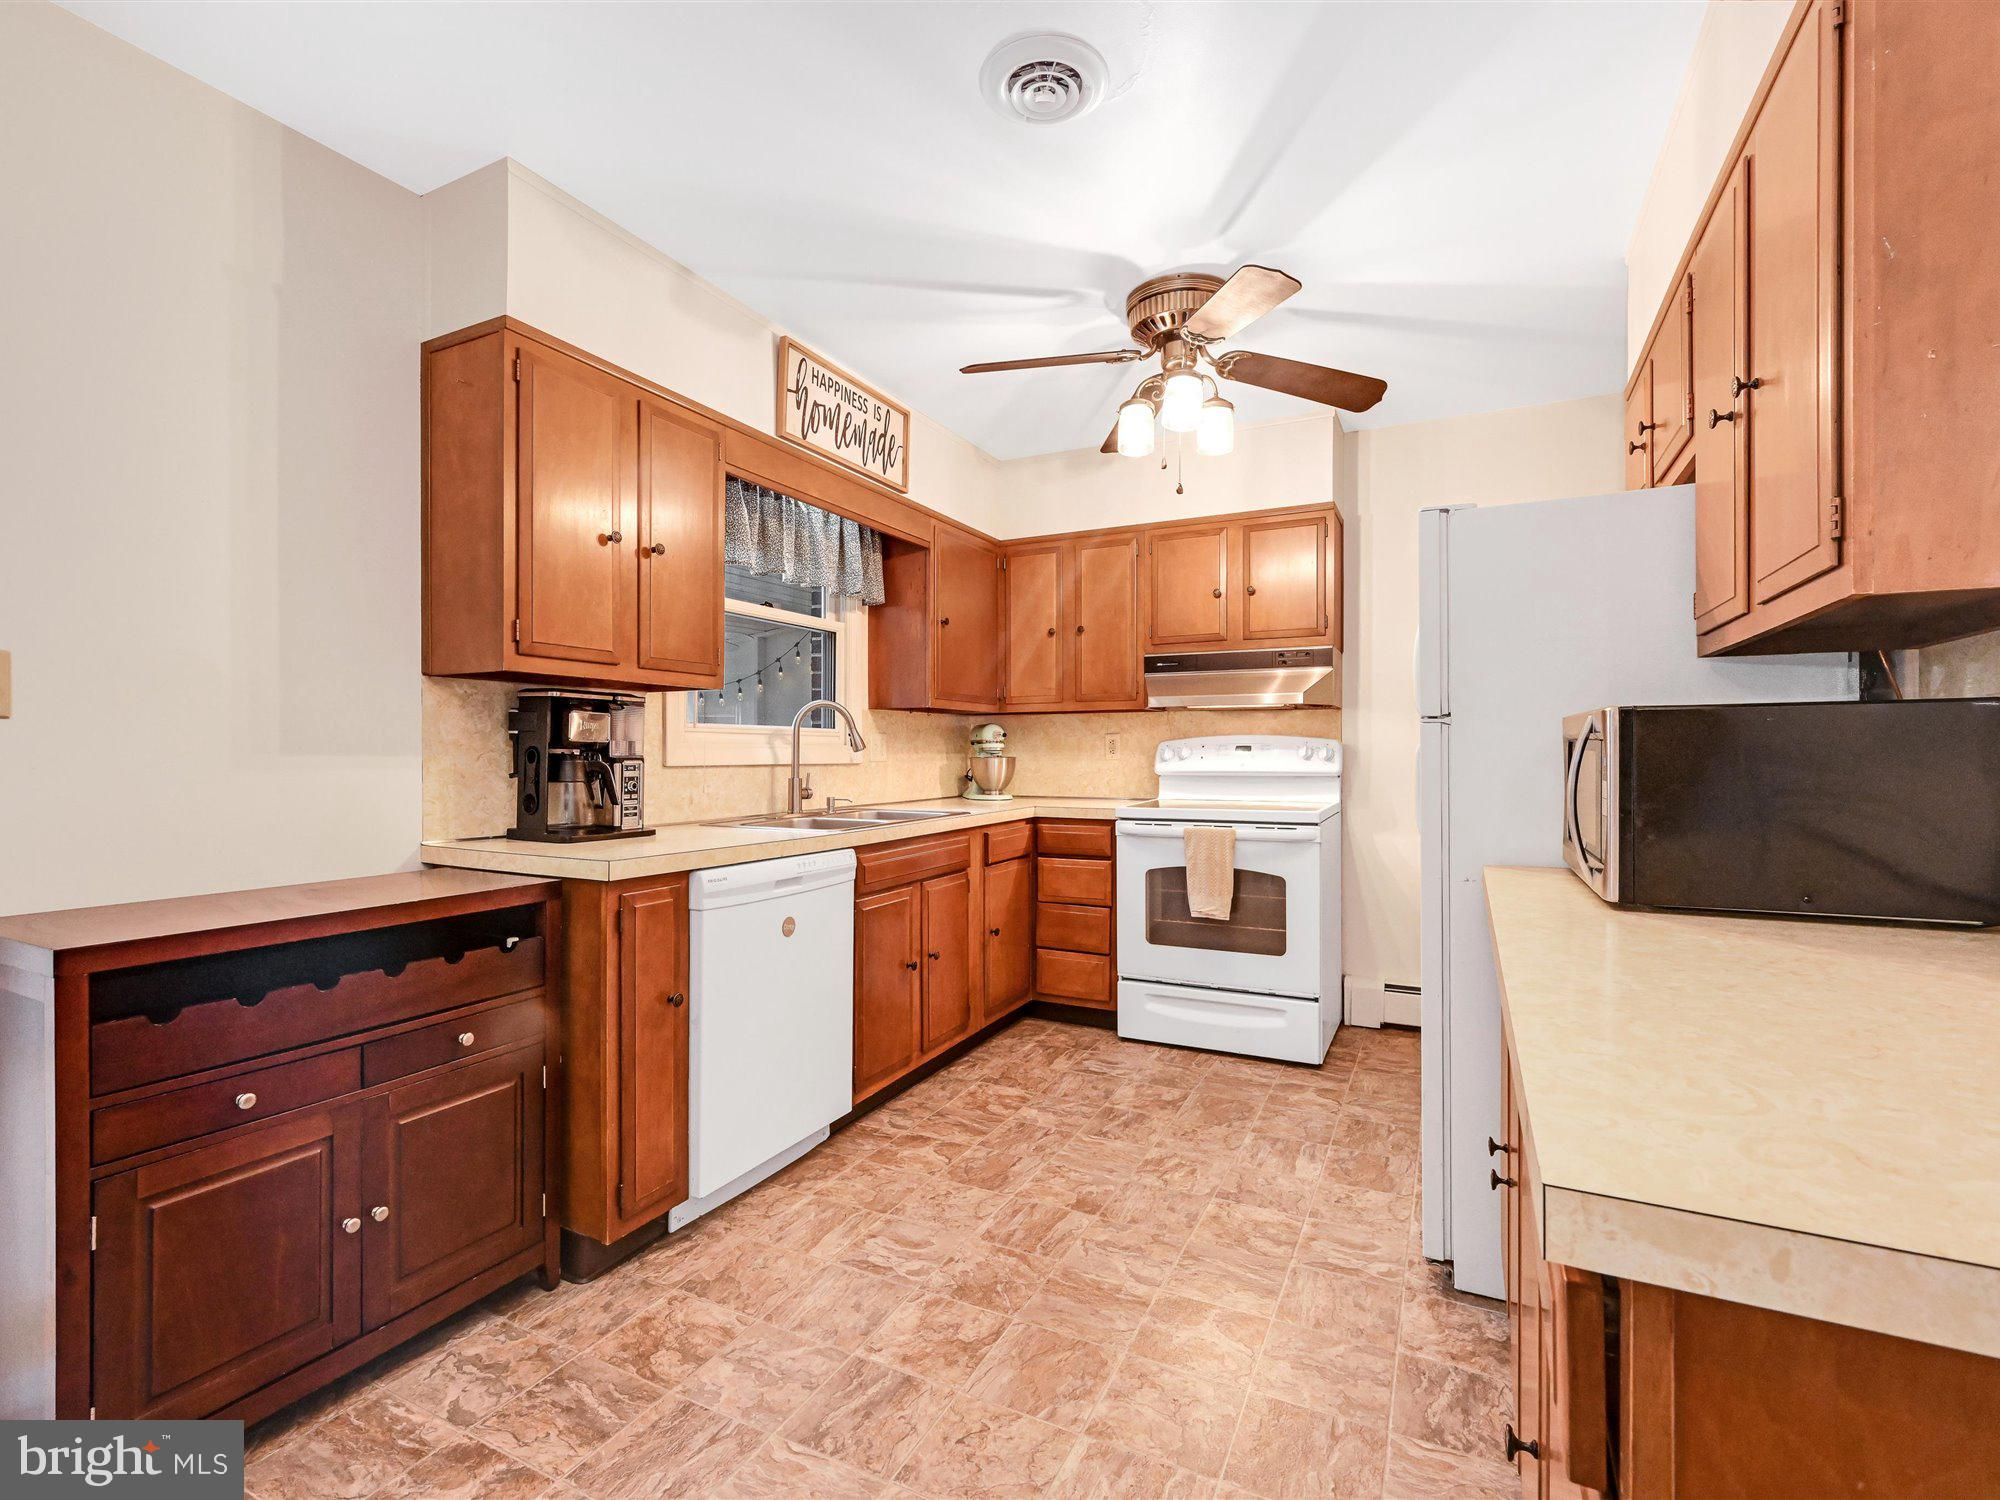 Kitchen - all appliances stay